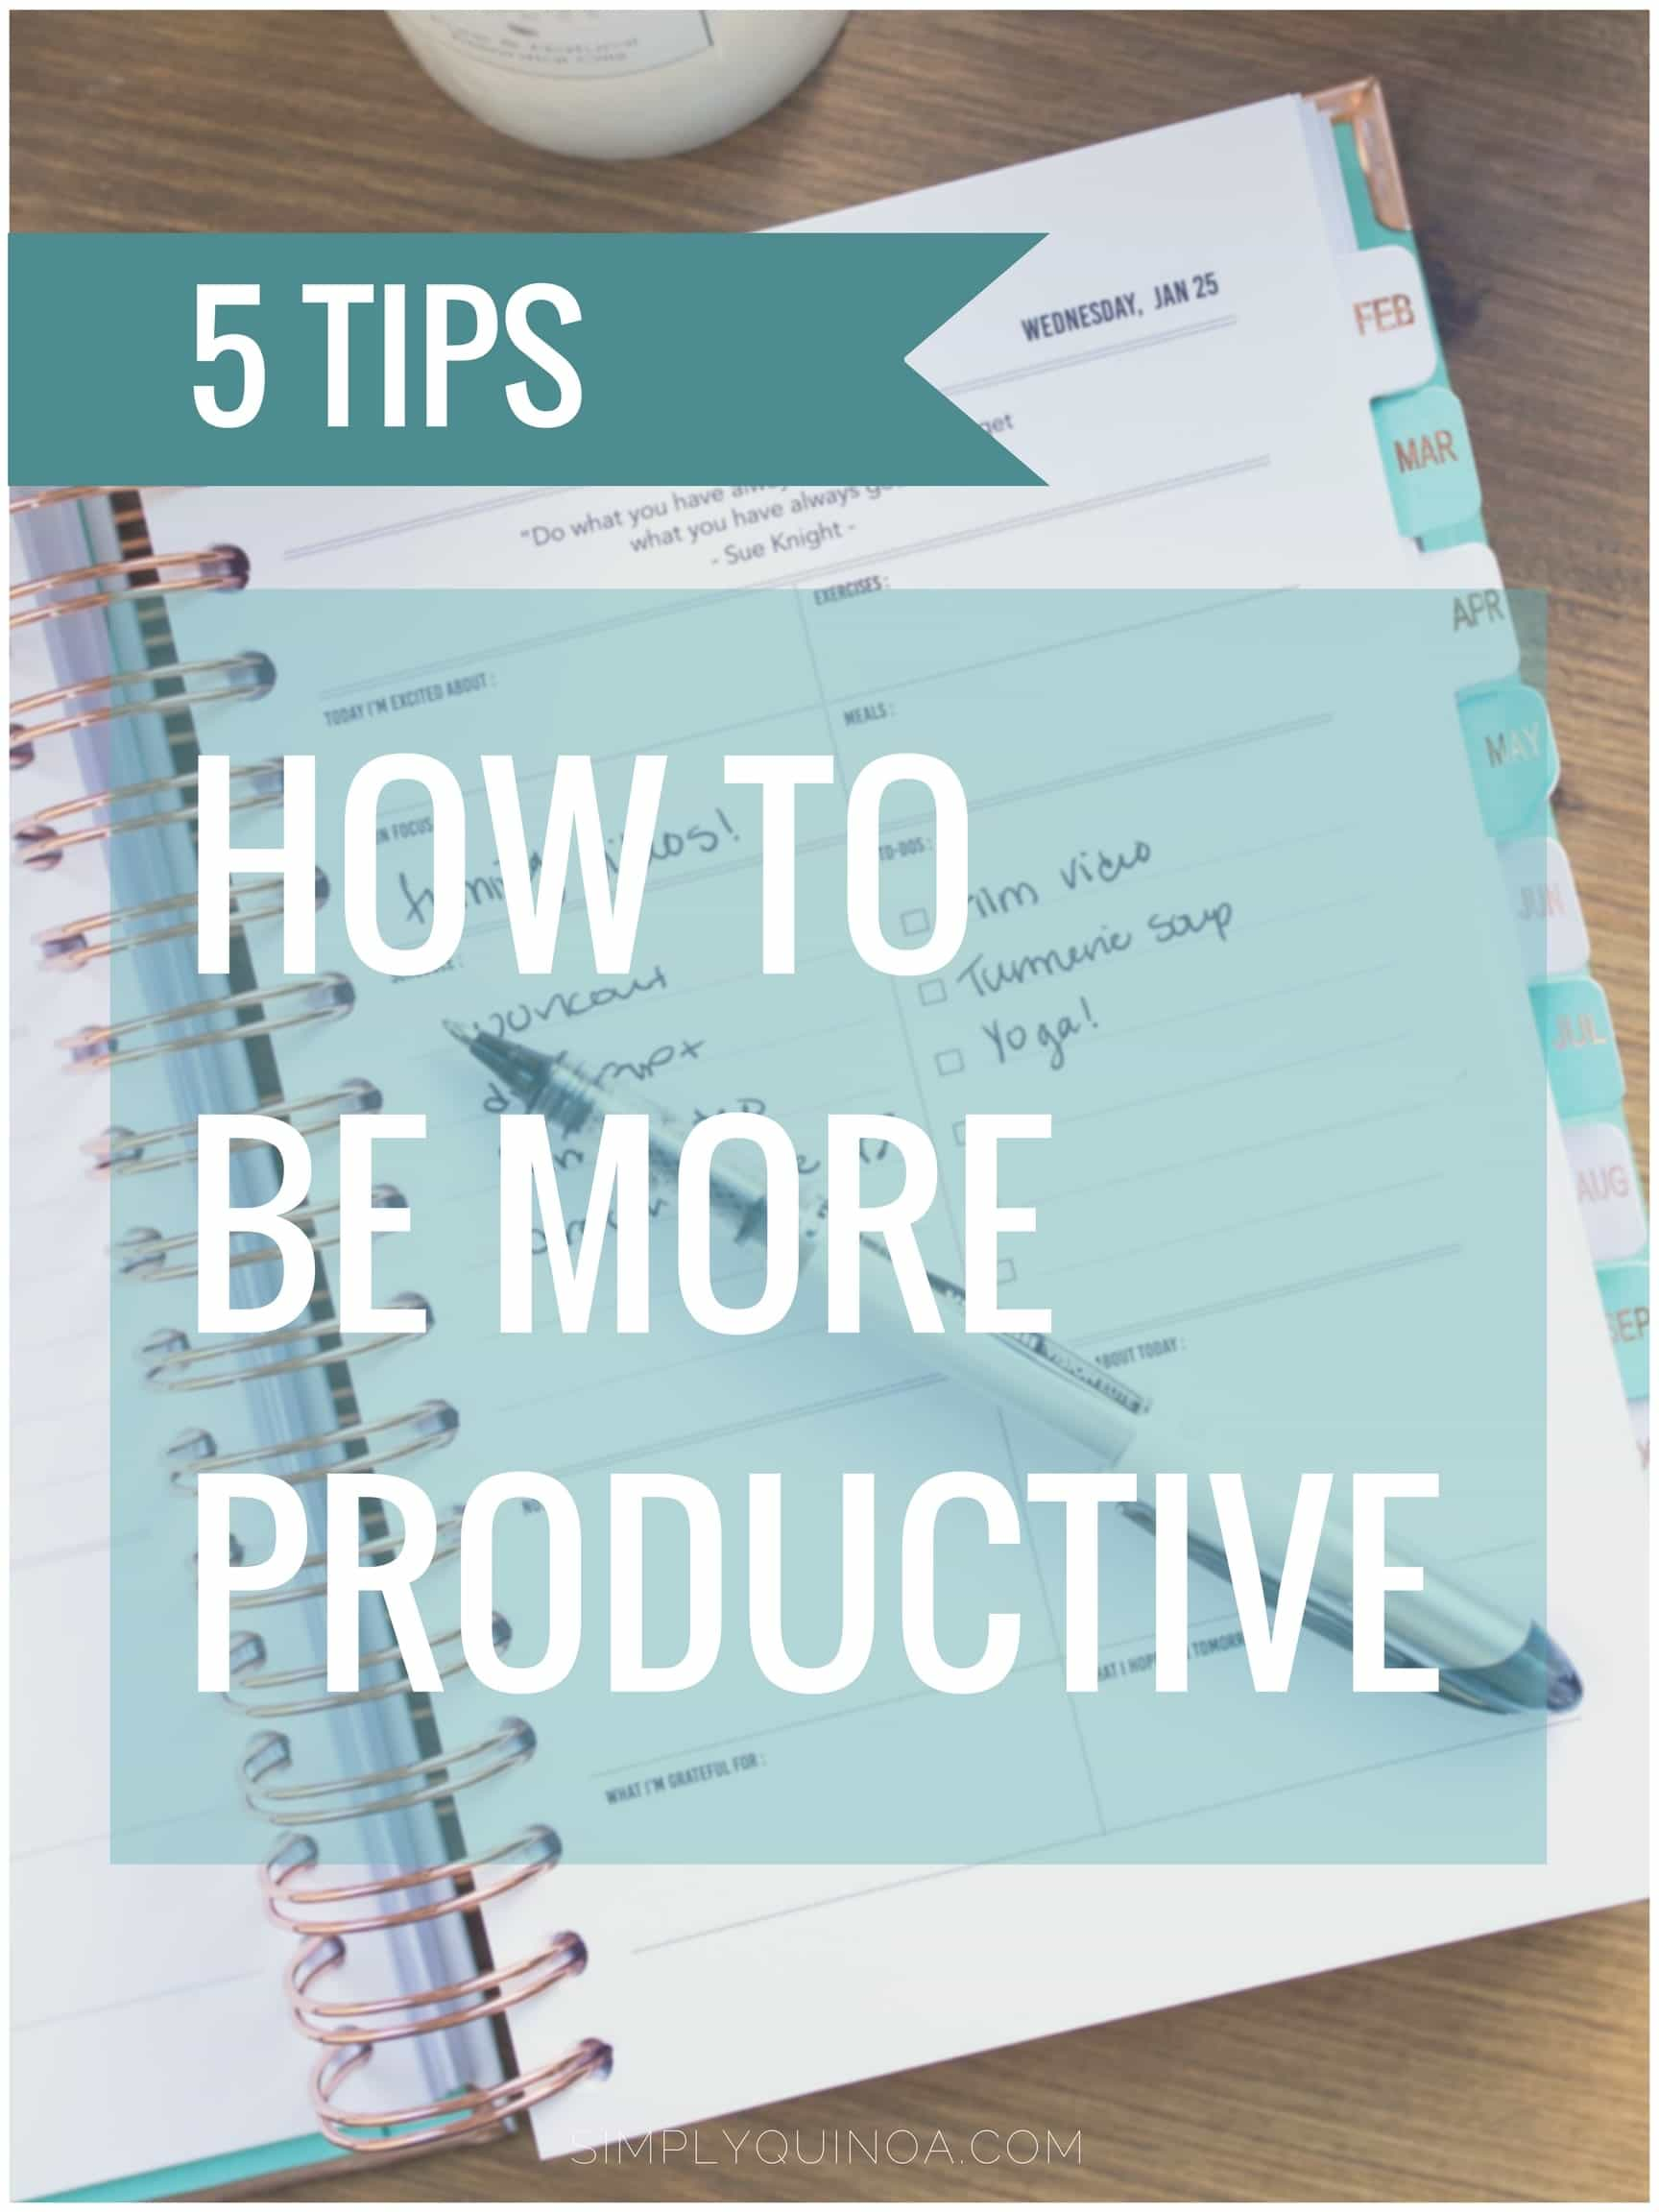 PRODUCTIVITY TIPS | how to be more productive at work and school with 5 simple tips!